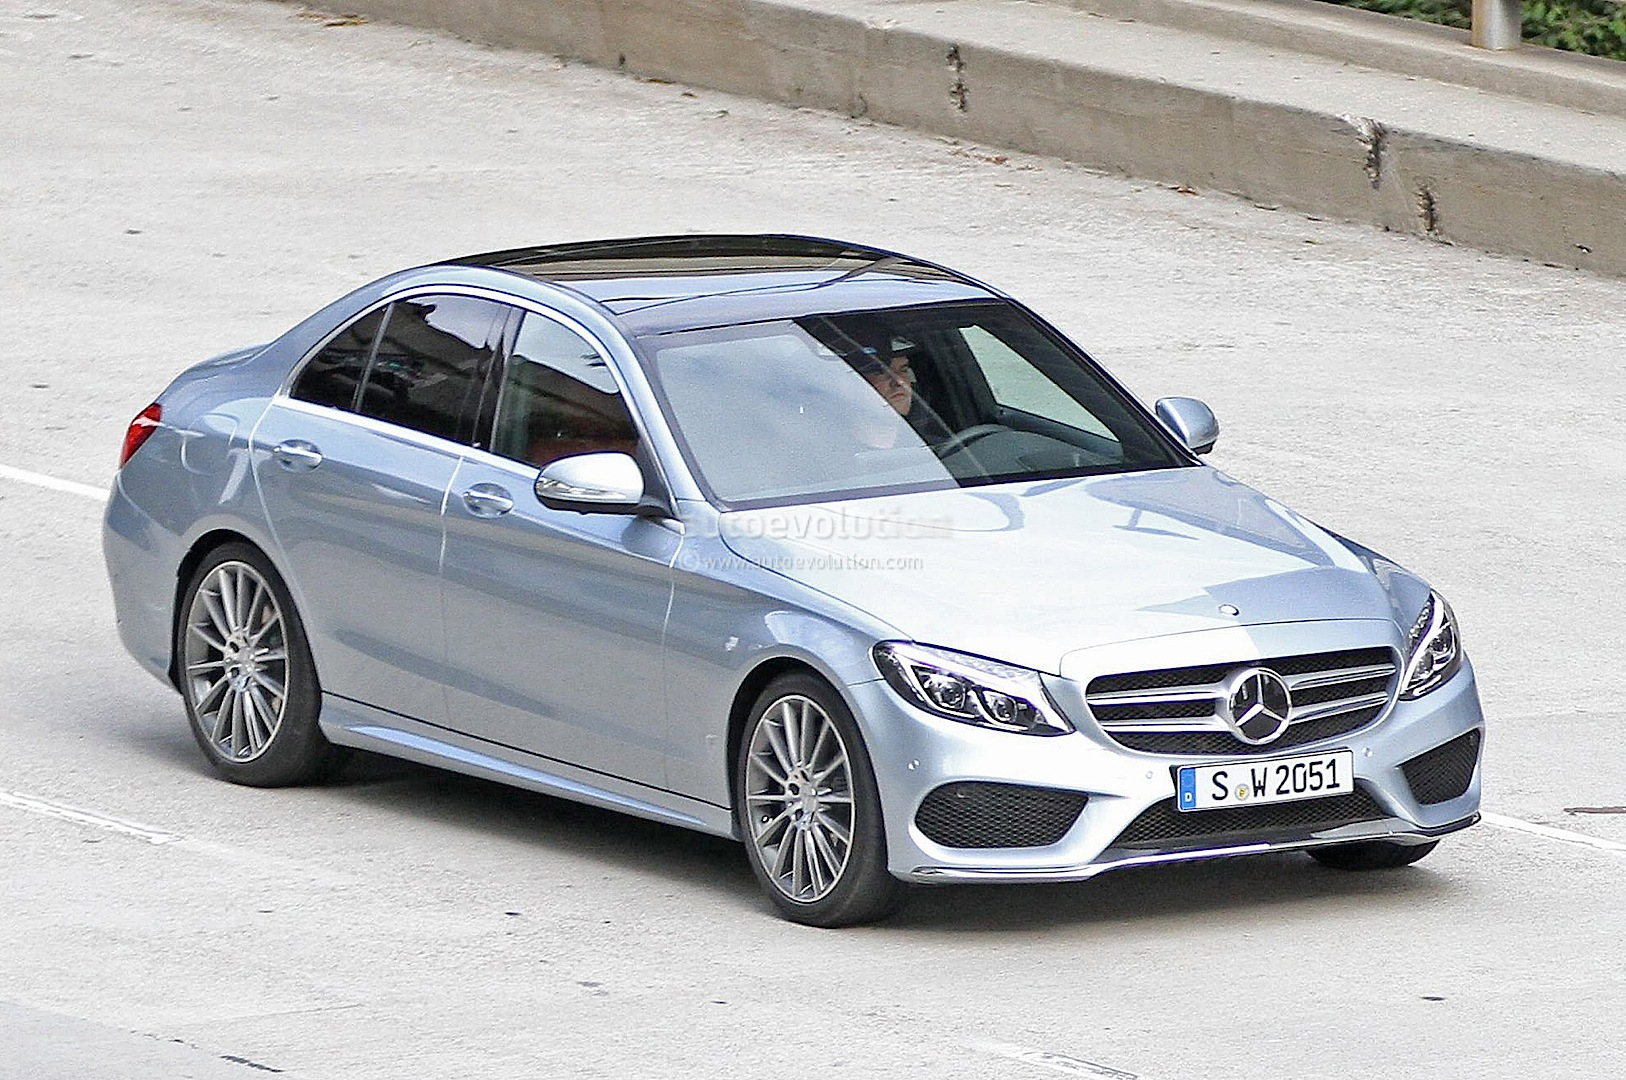 2015 mercedes benz c 200 w205 versus 2014 c 200 w204 for How much is a mercedes benz c class